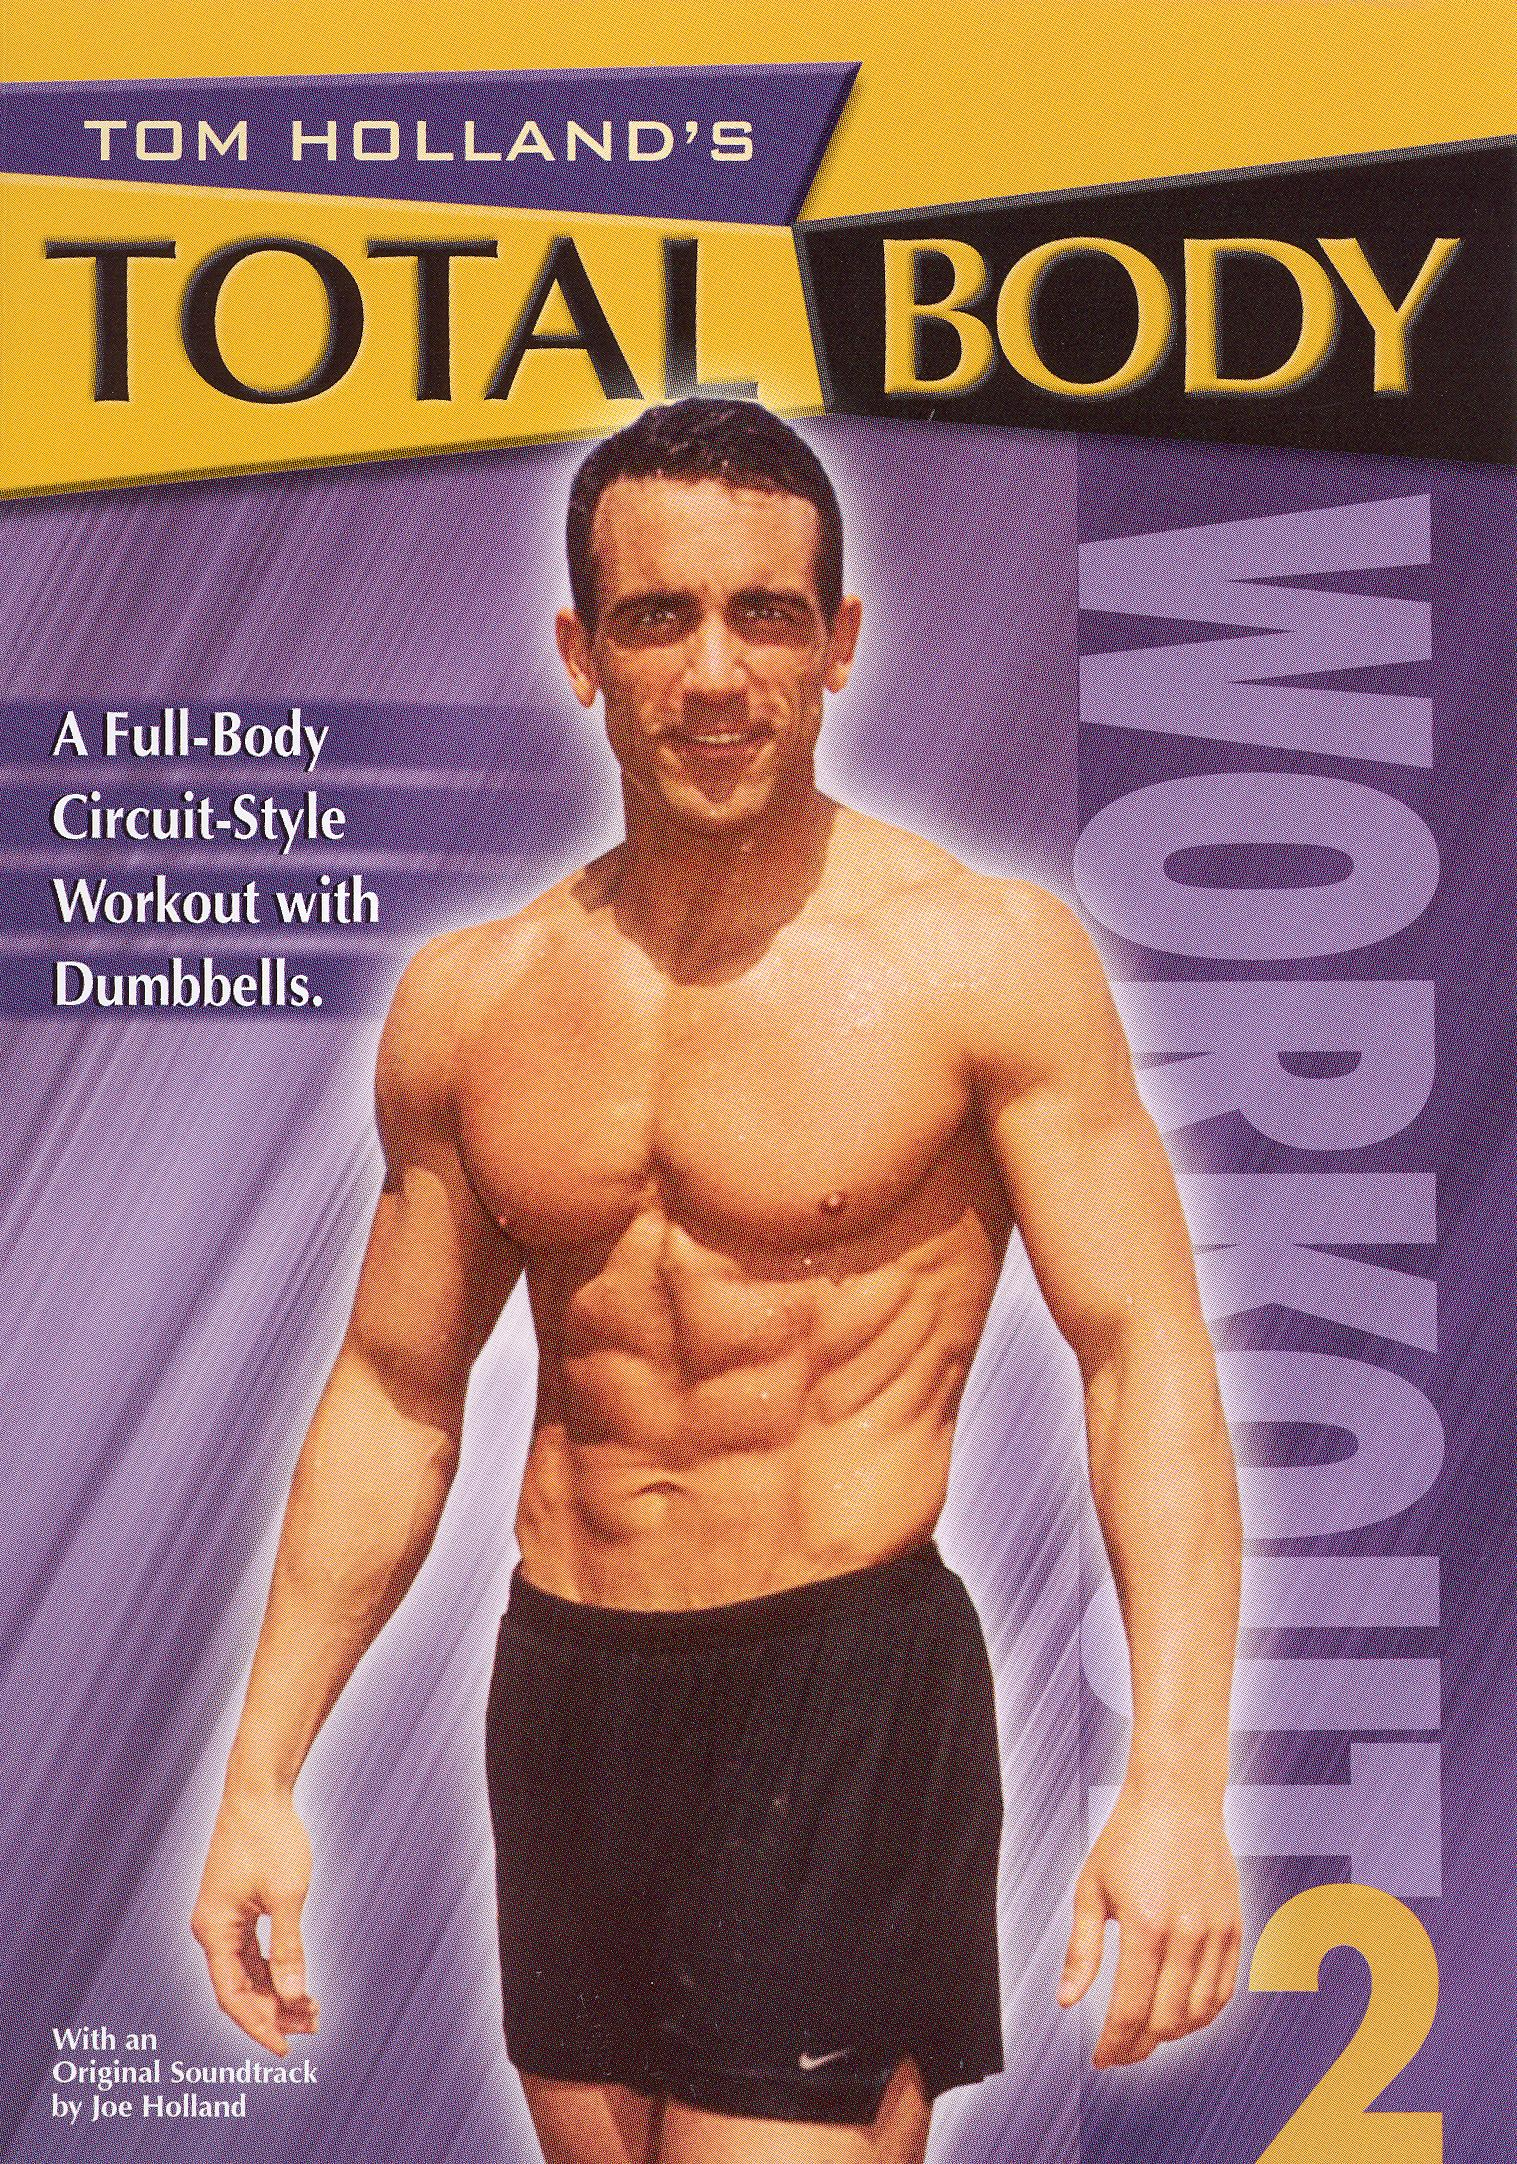 Tom Holland's Total Body Workout II